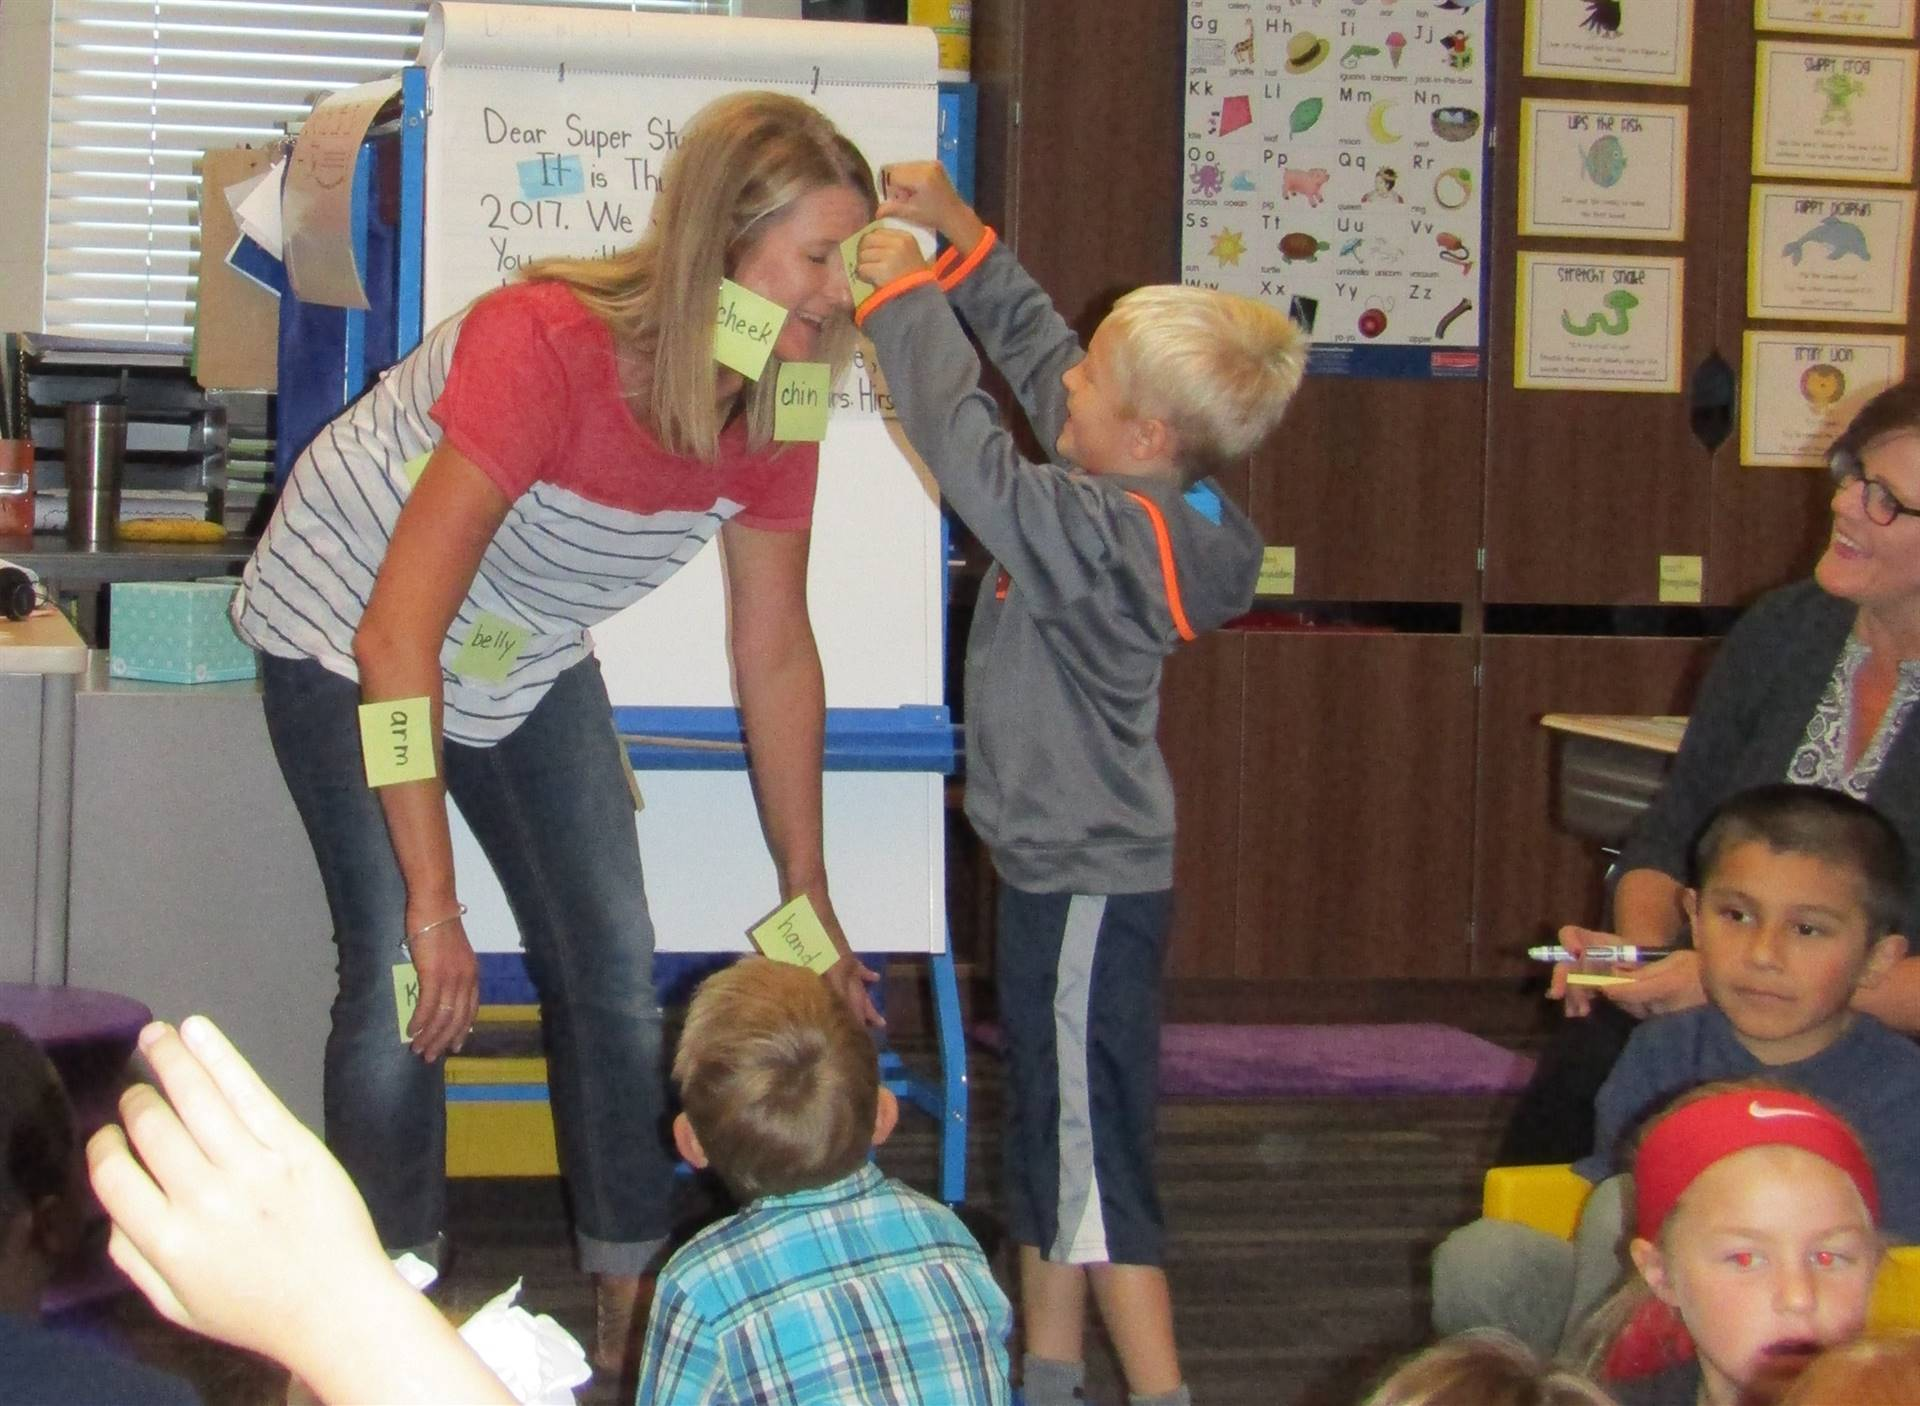 Elementary student putting a post it note on teacher during classroom labeling activity